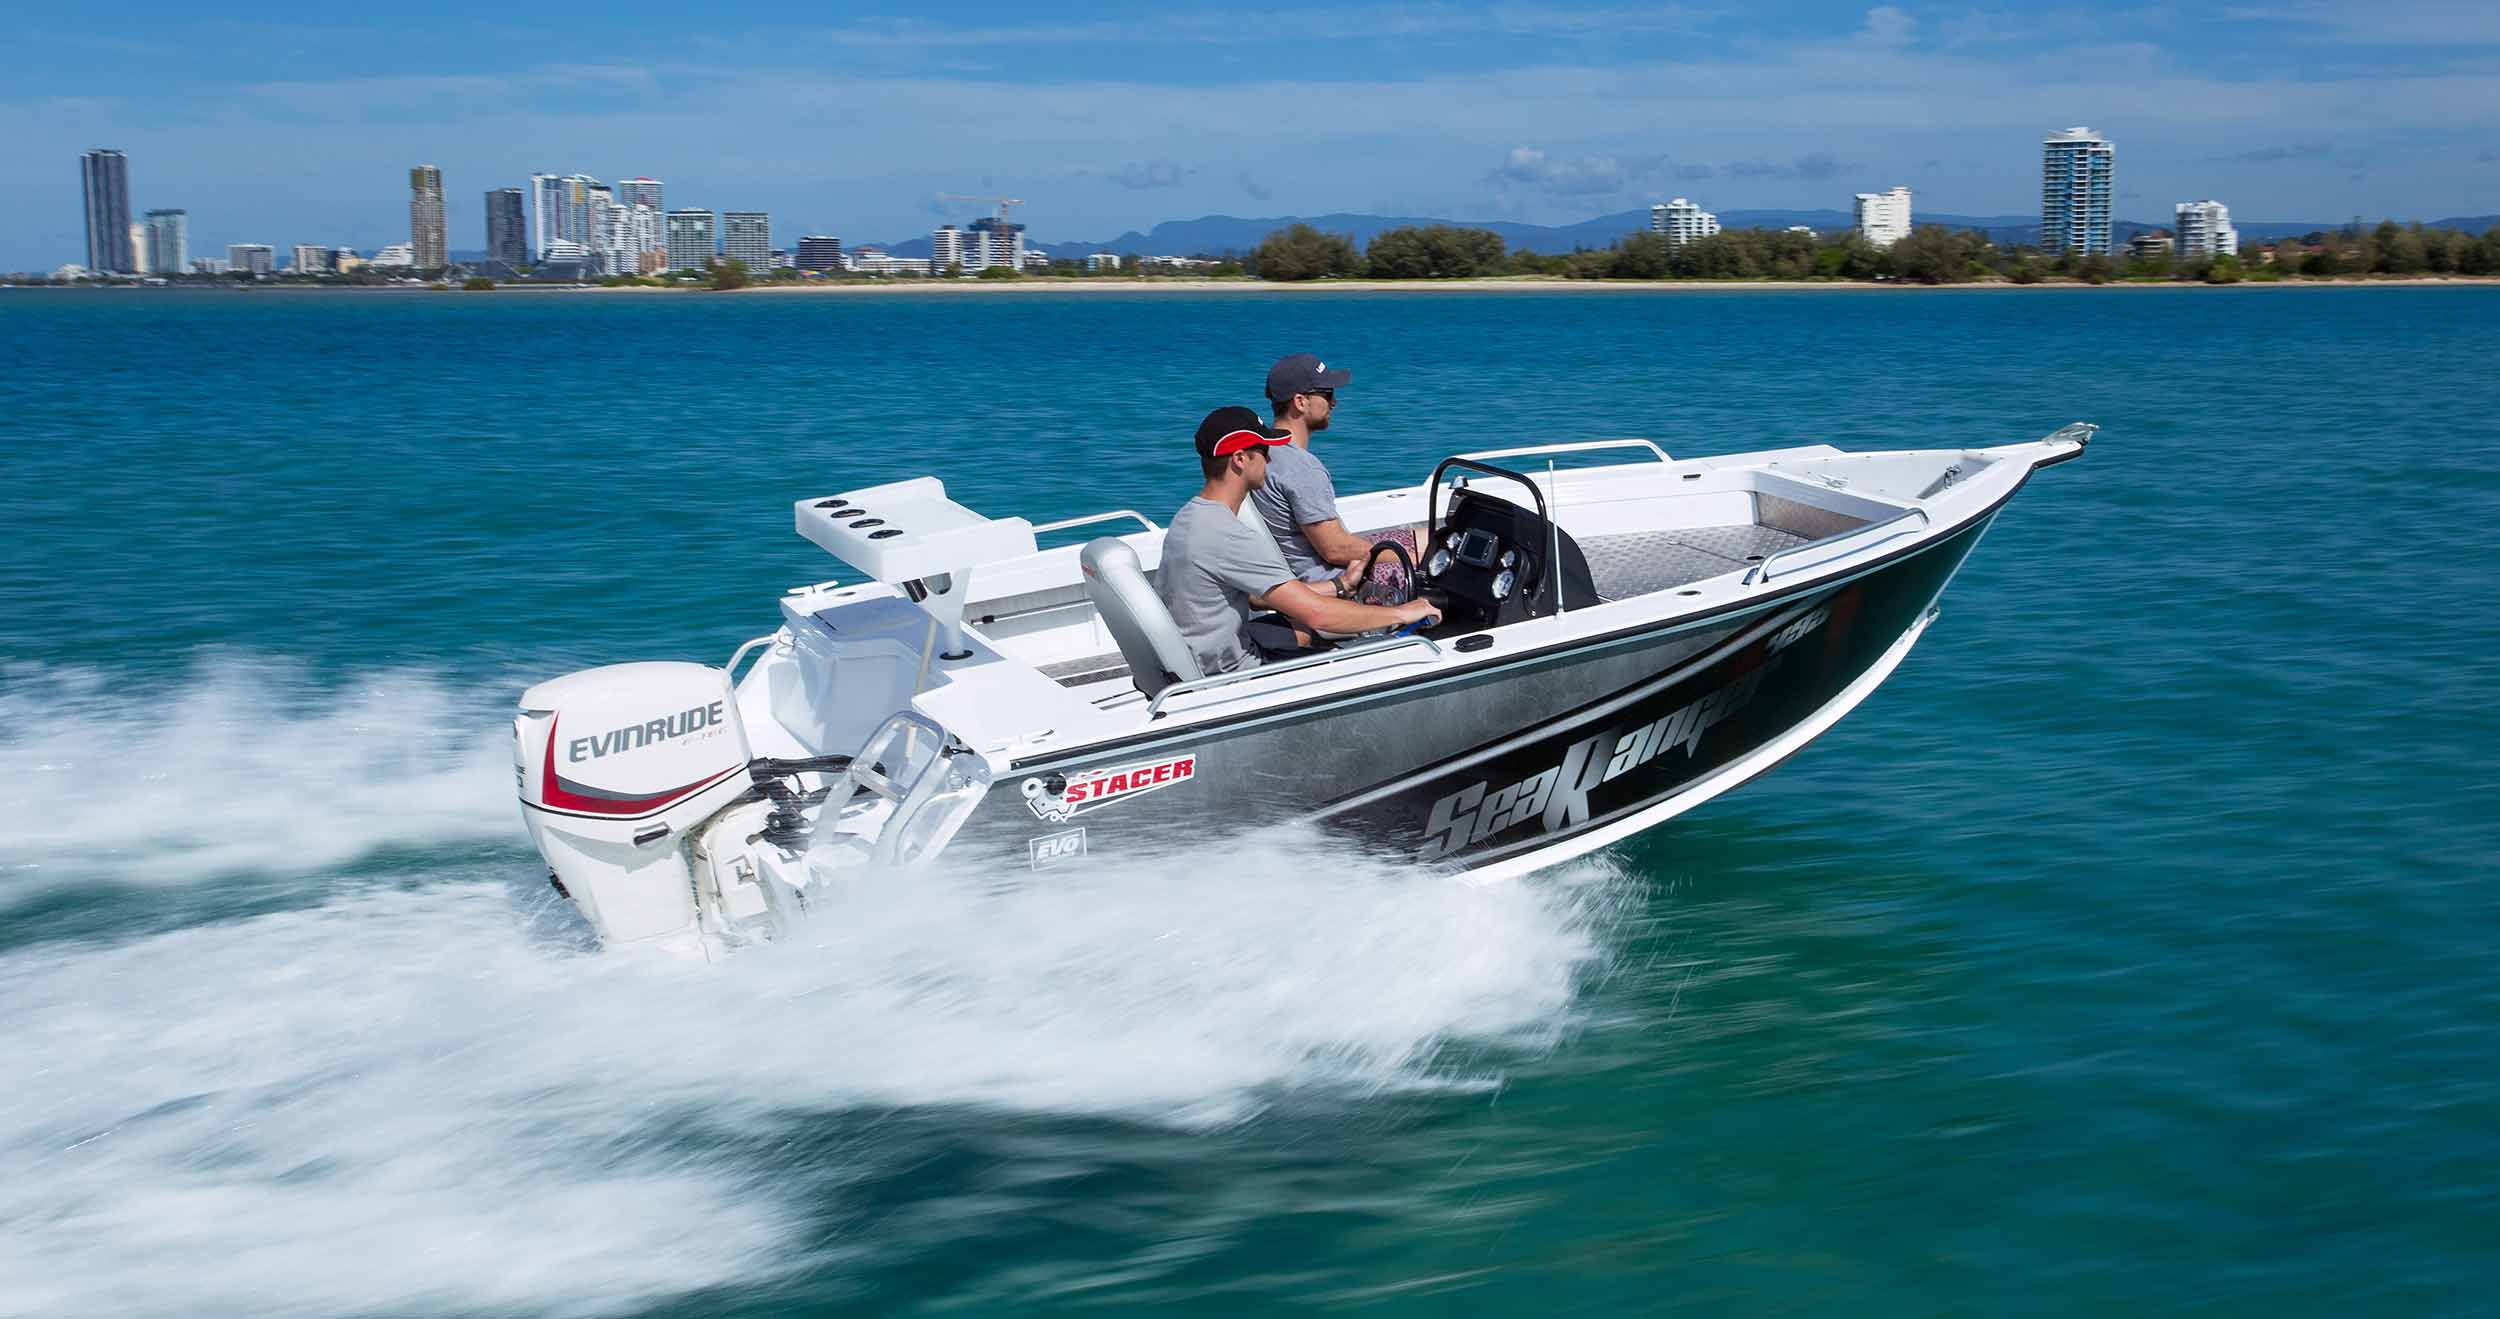 Stacer 499 Sea Ranger SC 2018 Review